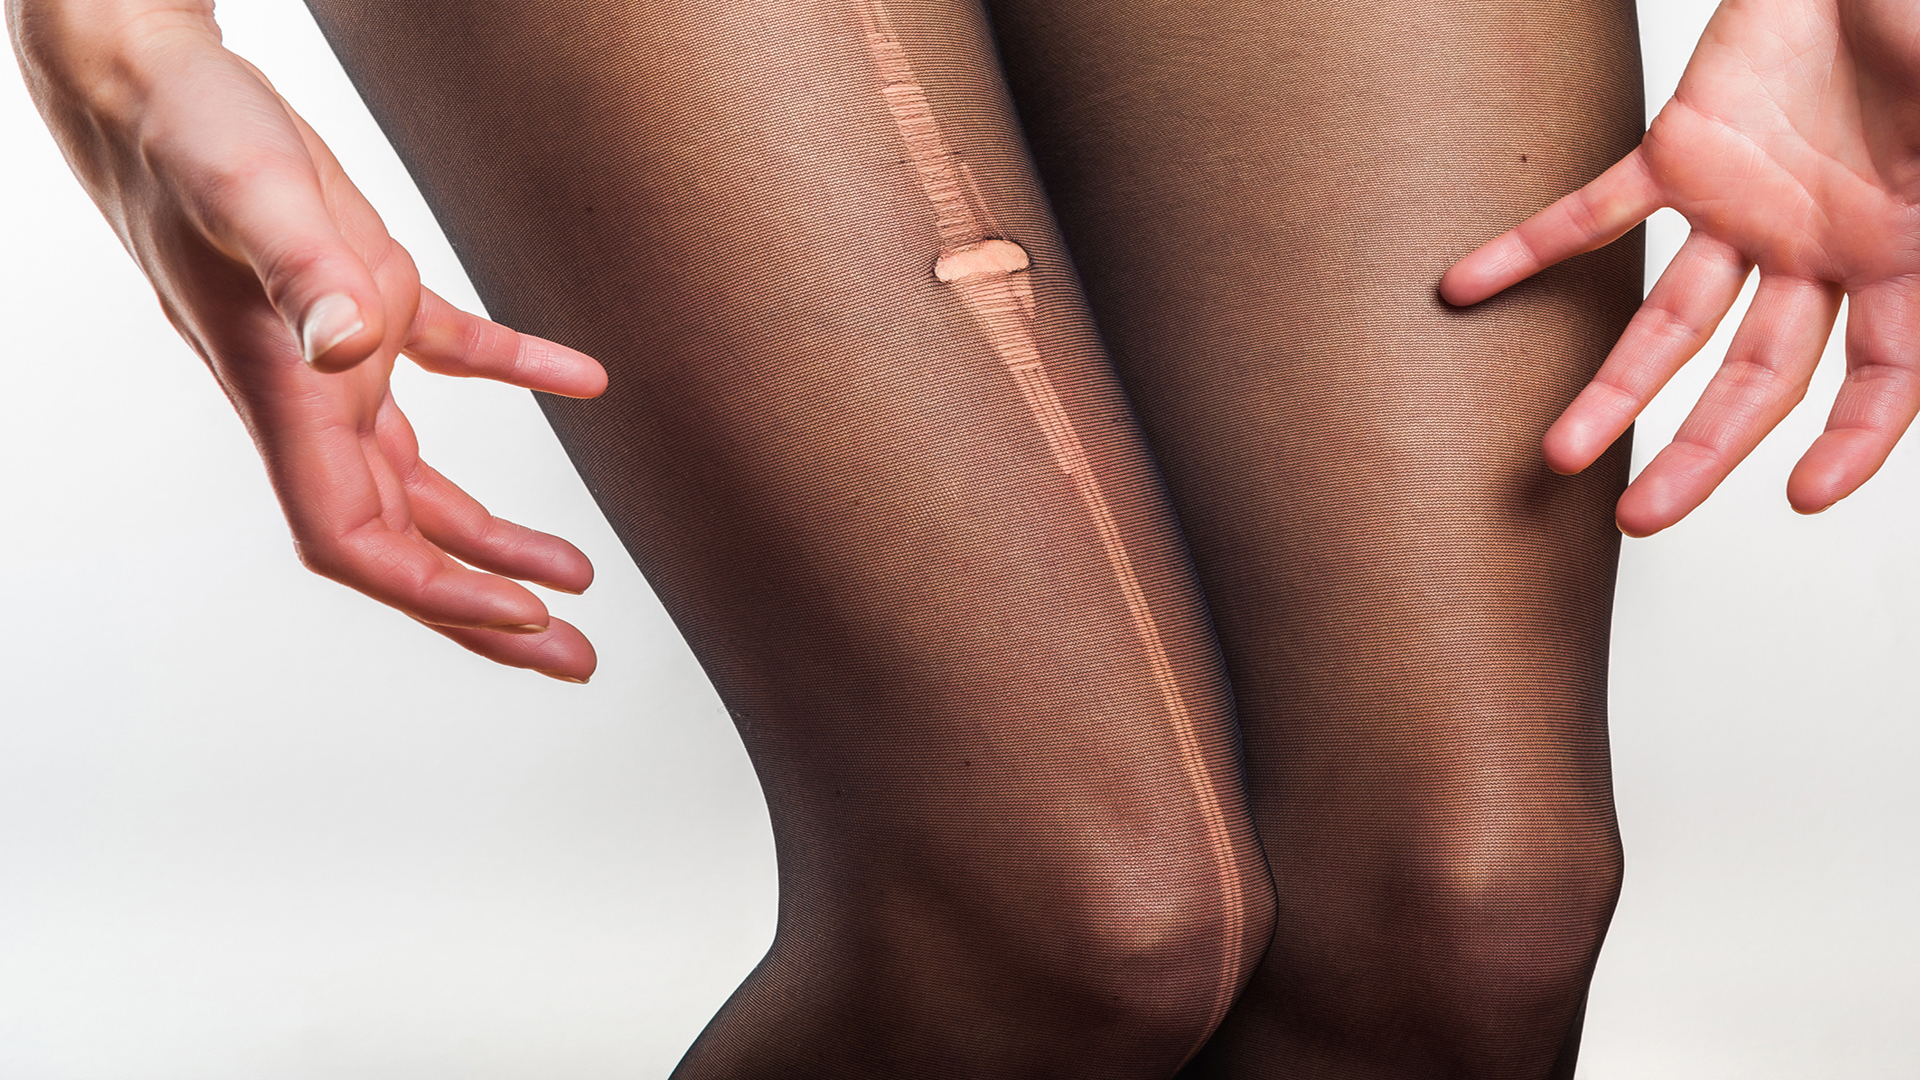 Pantyhose Stronger Than Steel + More Stories Trending Now